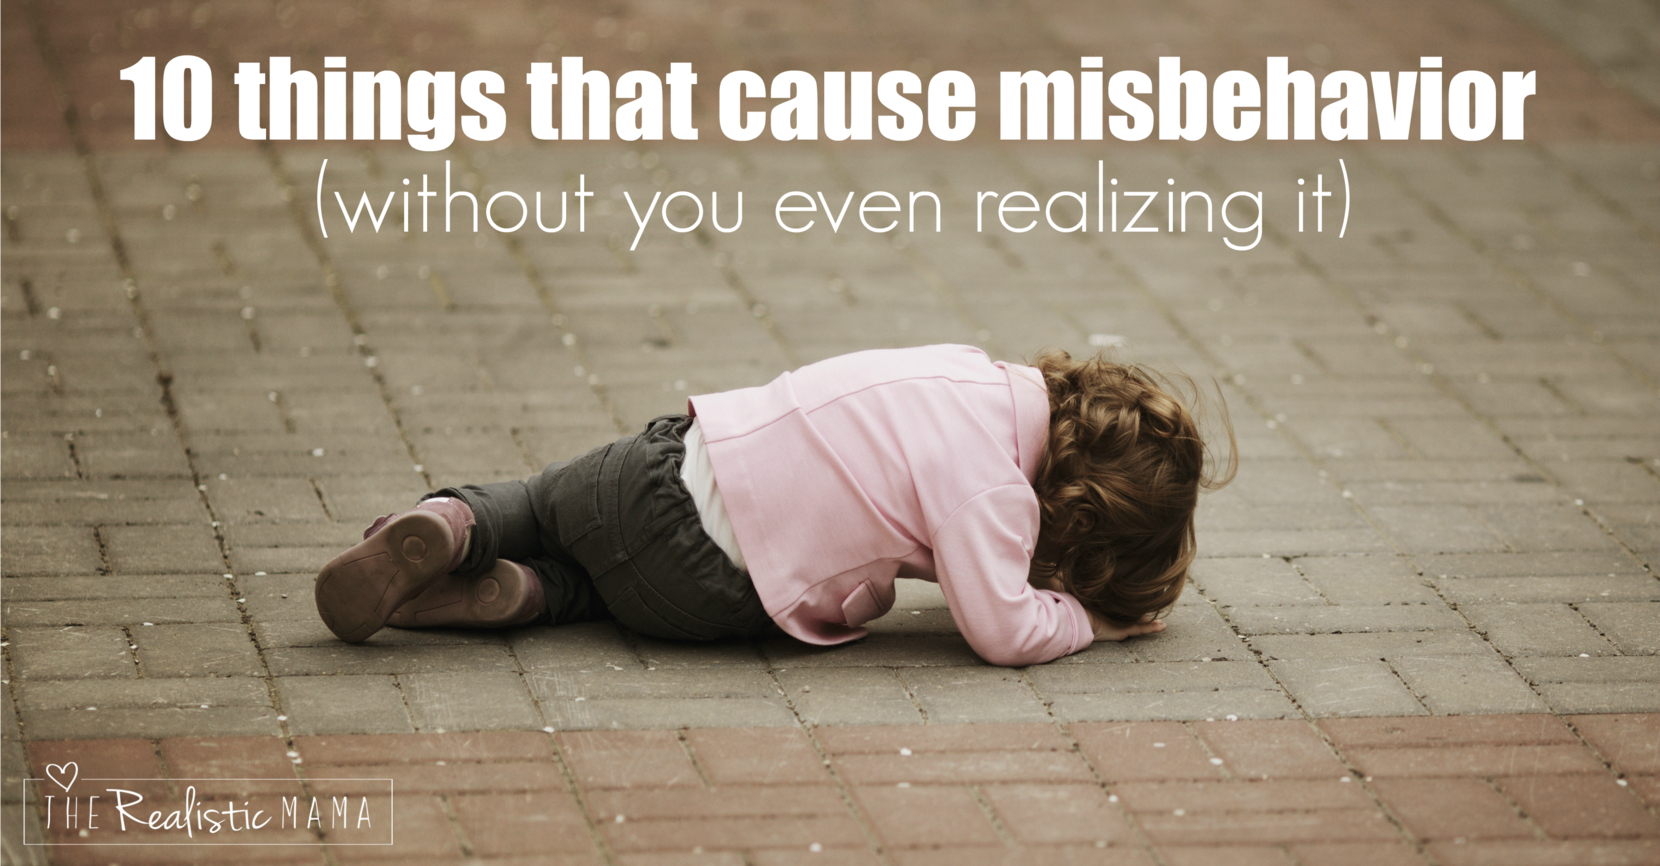 10 things that cause misbehavior